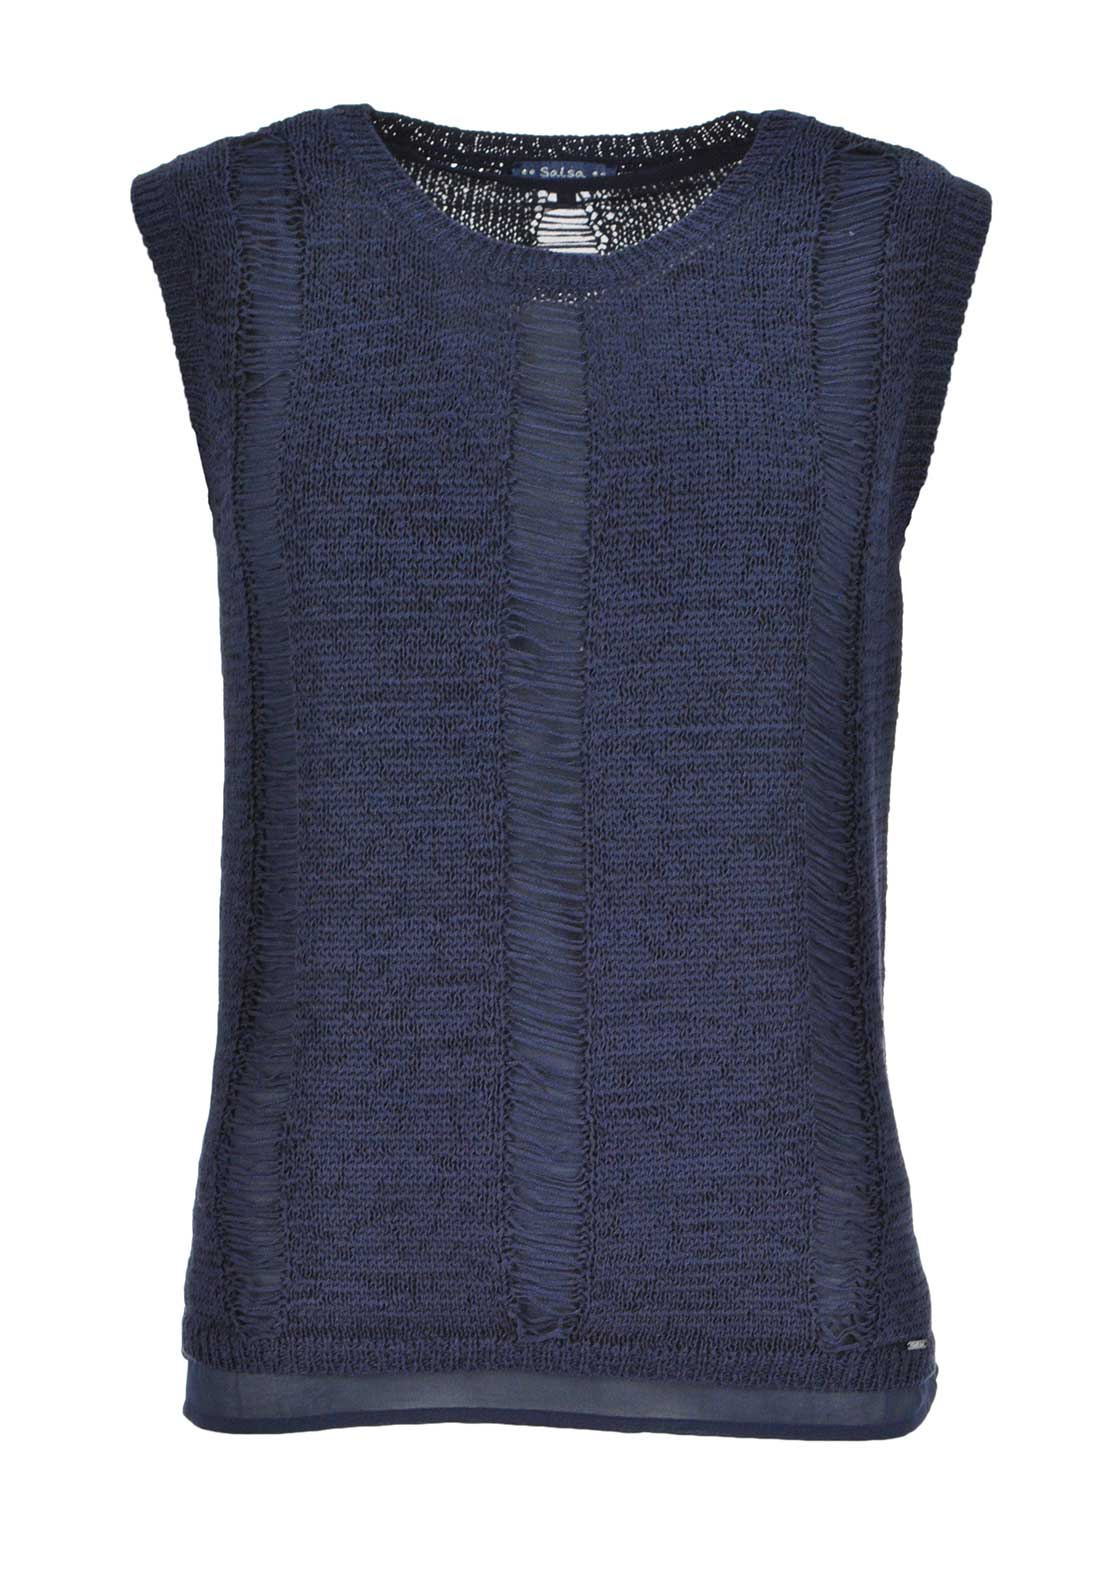 Salsa Meadow Lakes Sleeveless Knitted Top, Navy